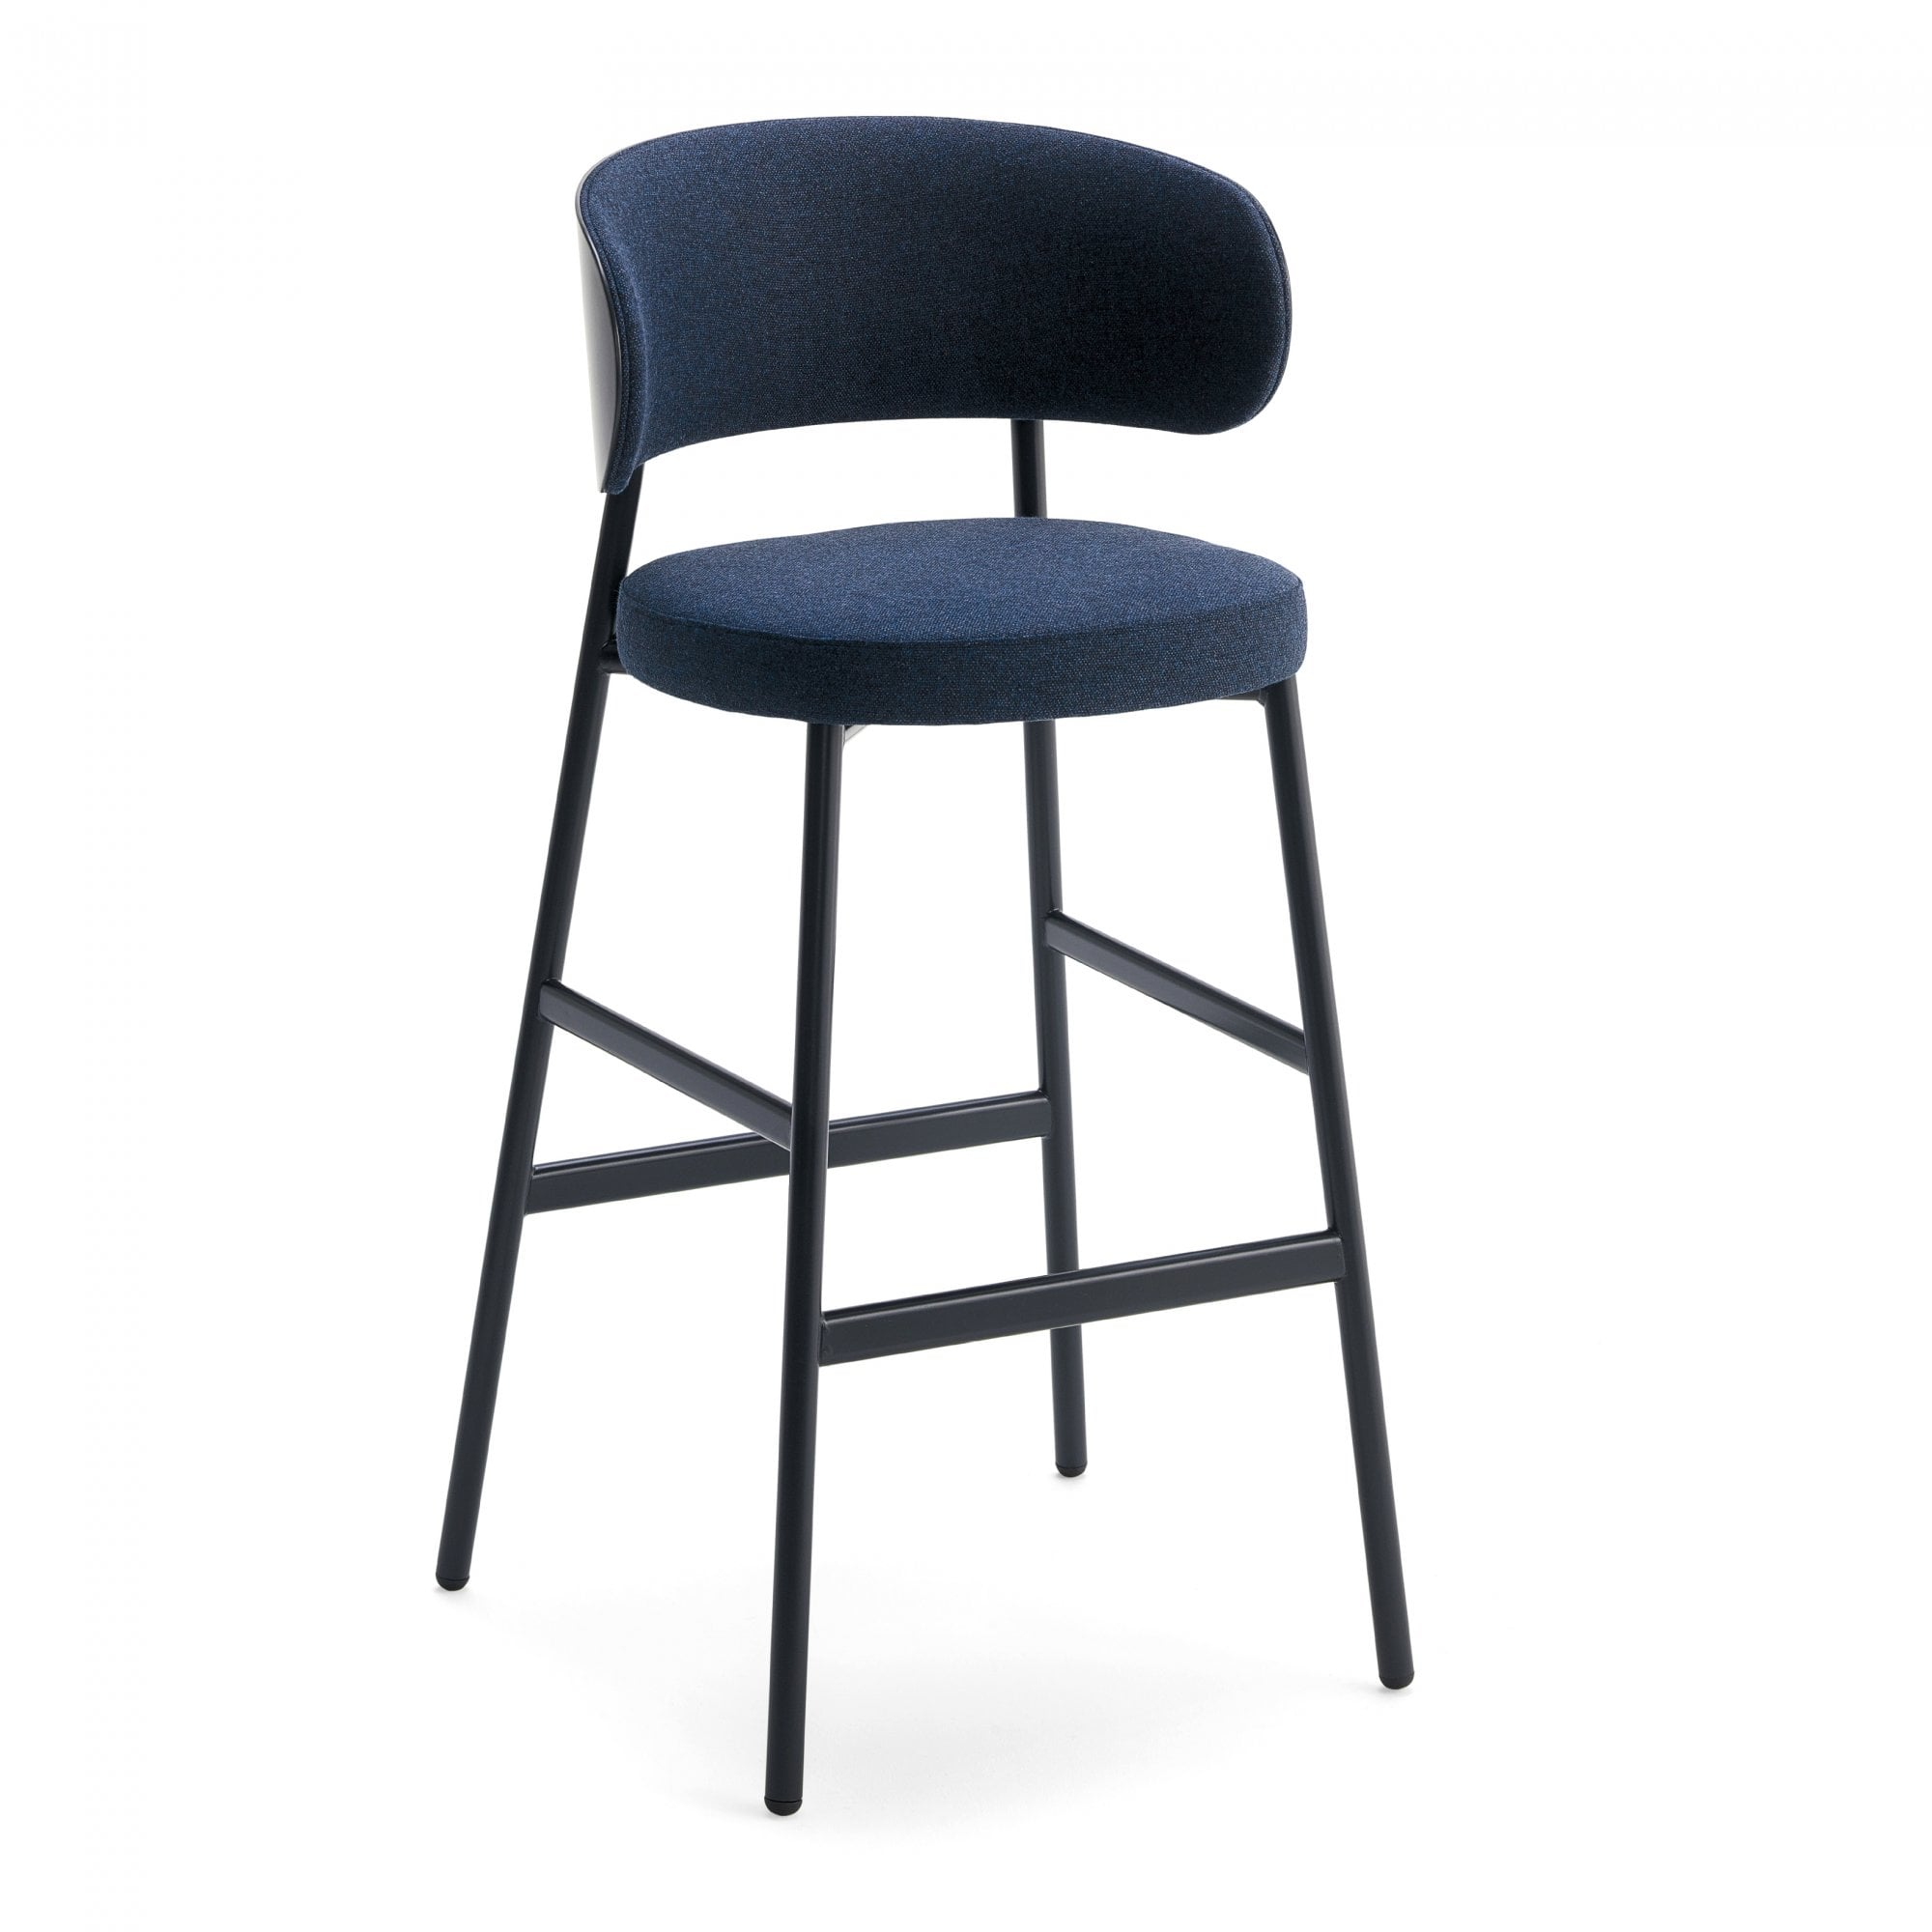 Image of: Coco Outdoor Bar Stool With Arms Stools From Hill Cross Furniture Uk